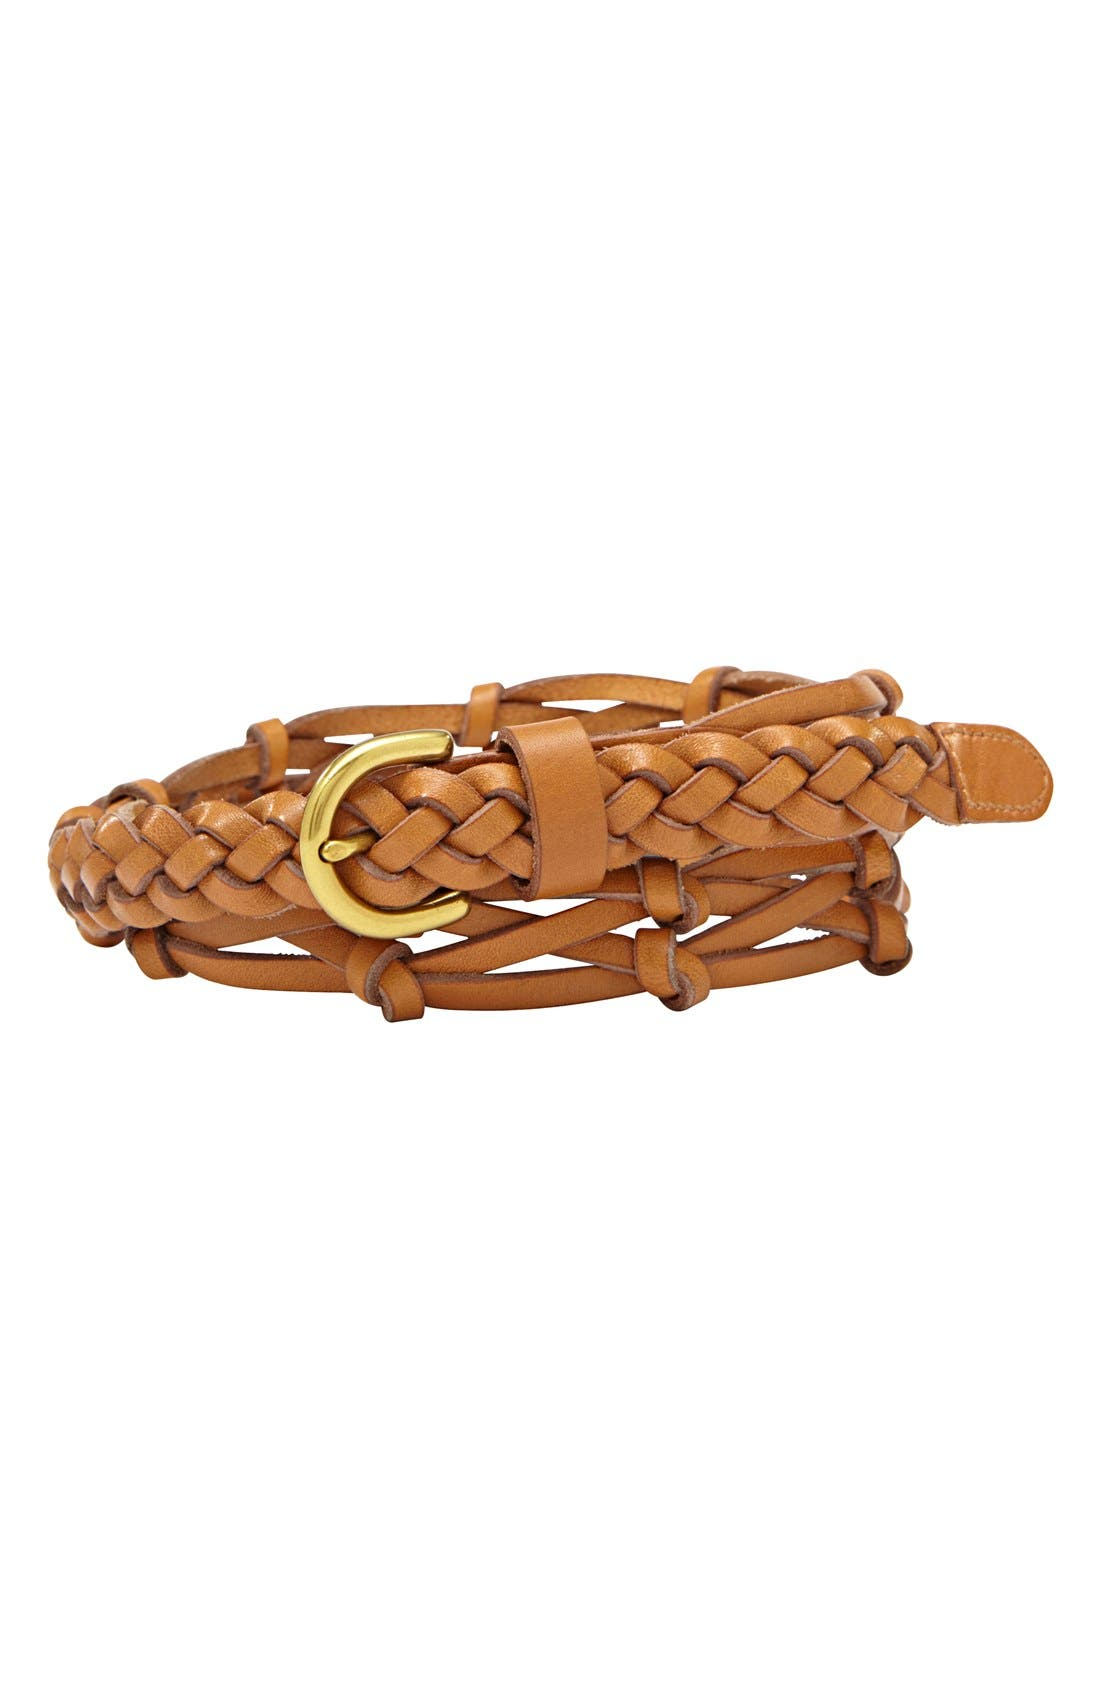 Main Image - Fossil Knotted & Woven Leather Belt